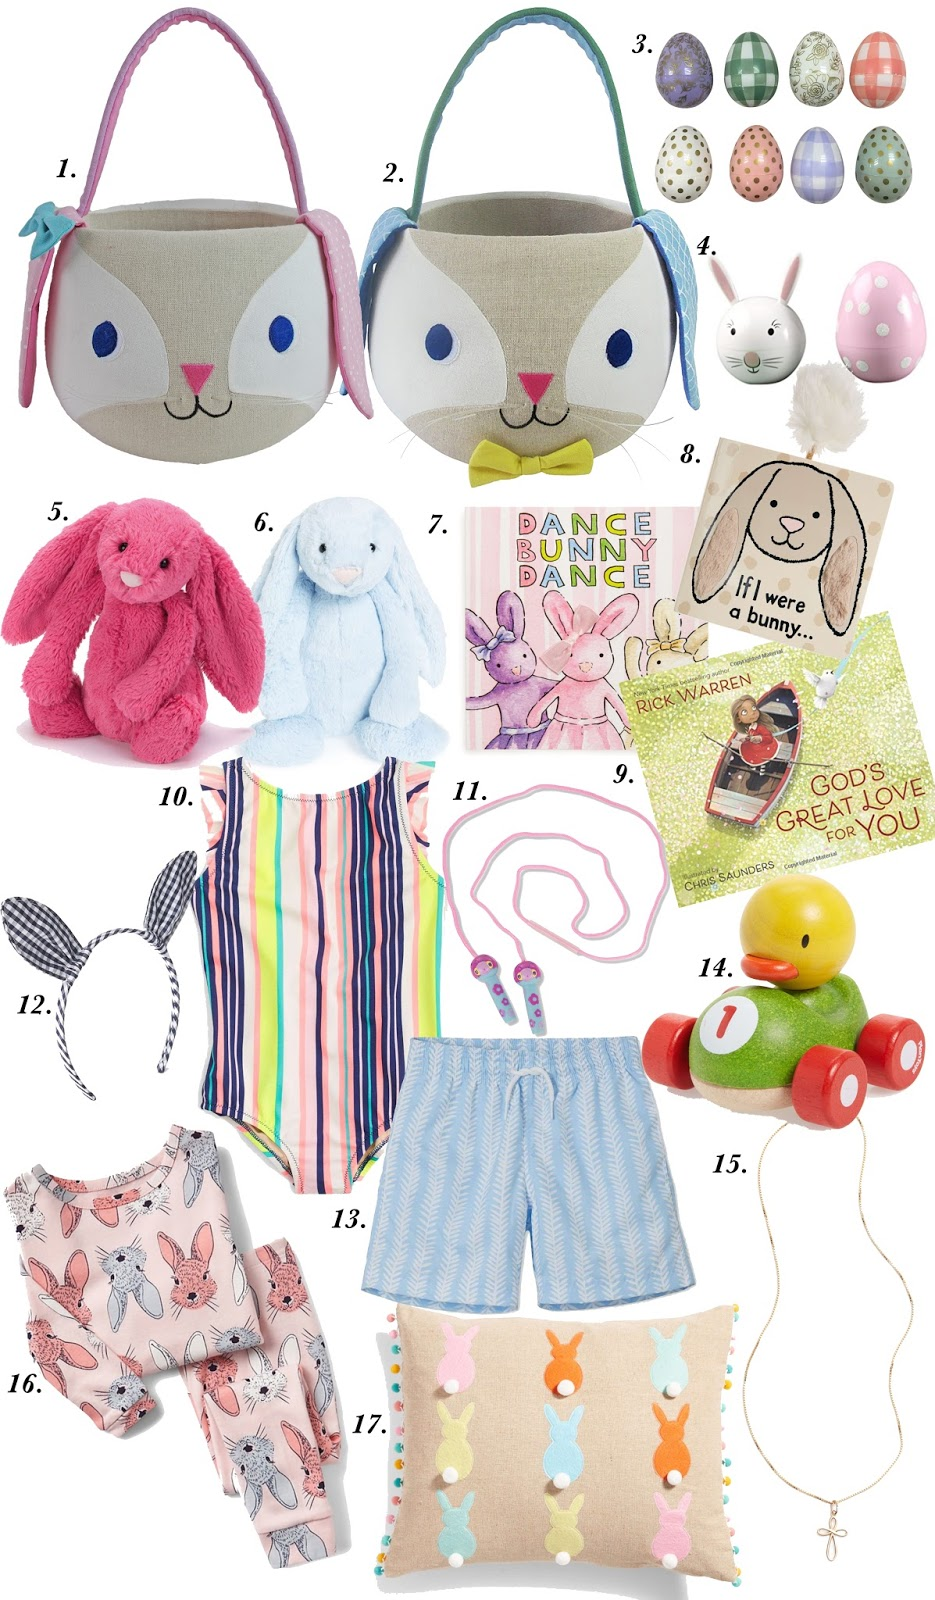 Easter Basket Ideas for Kids - Something Delightful Blog